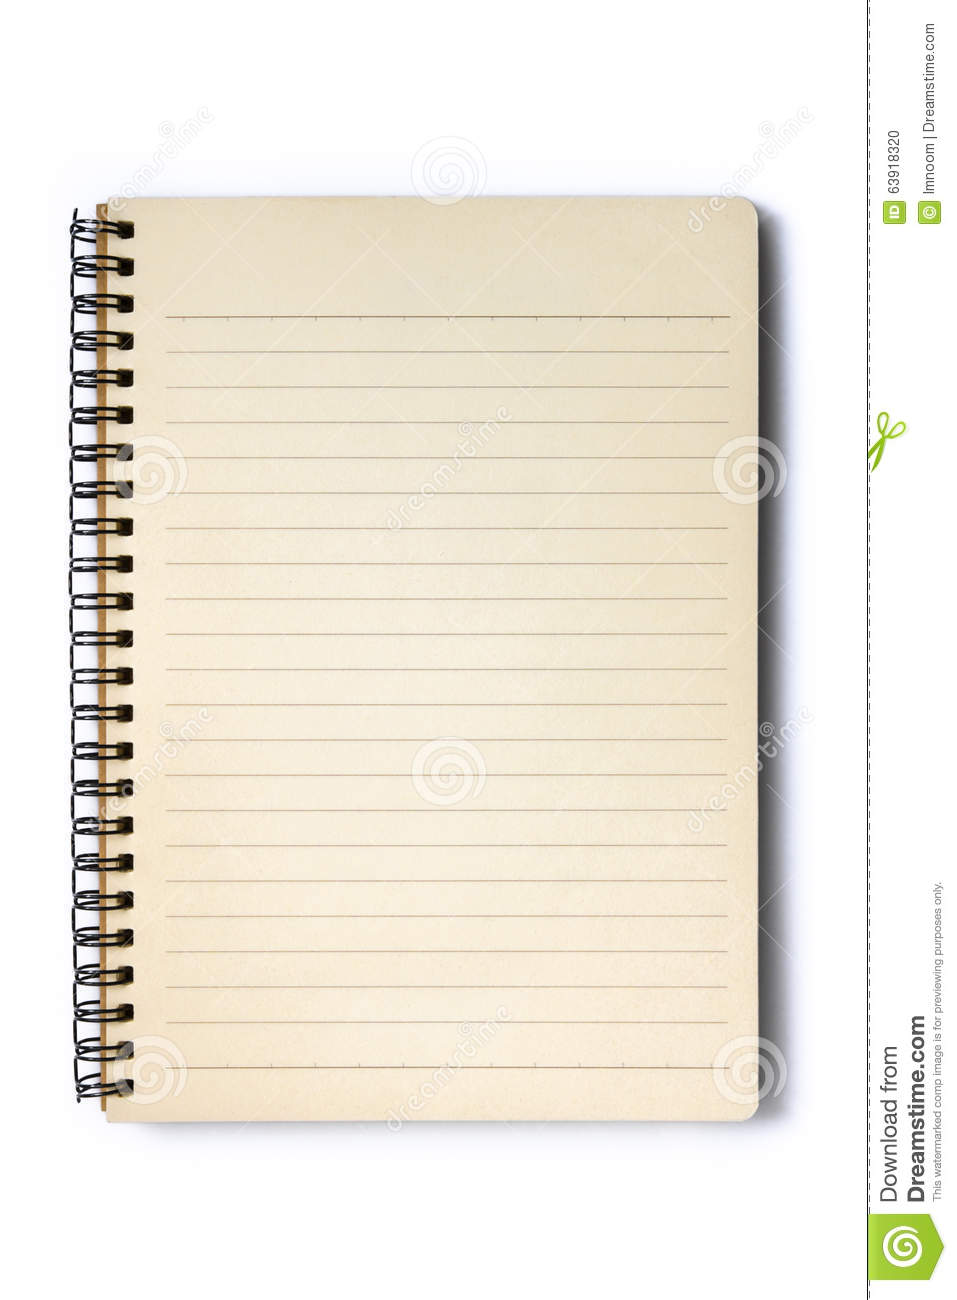 Open Blank Notebook Stock Photo - Image: 63918320